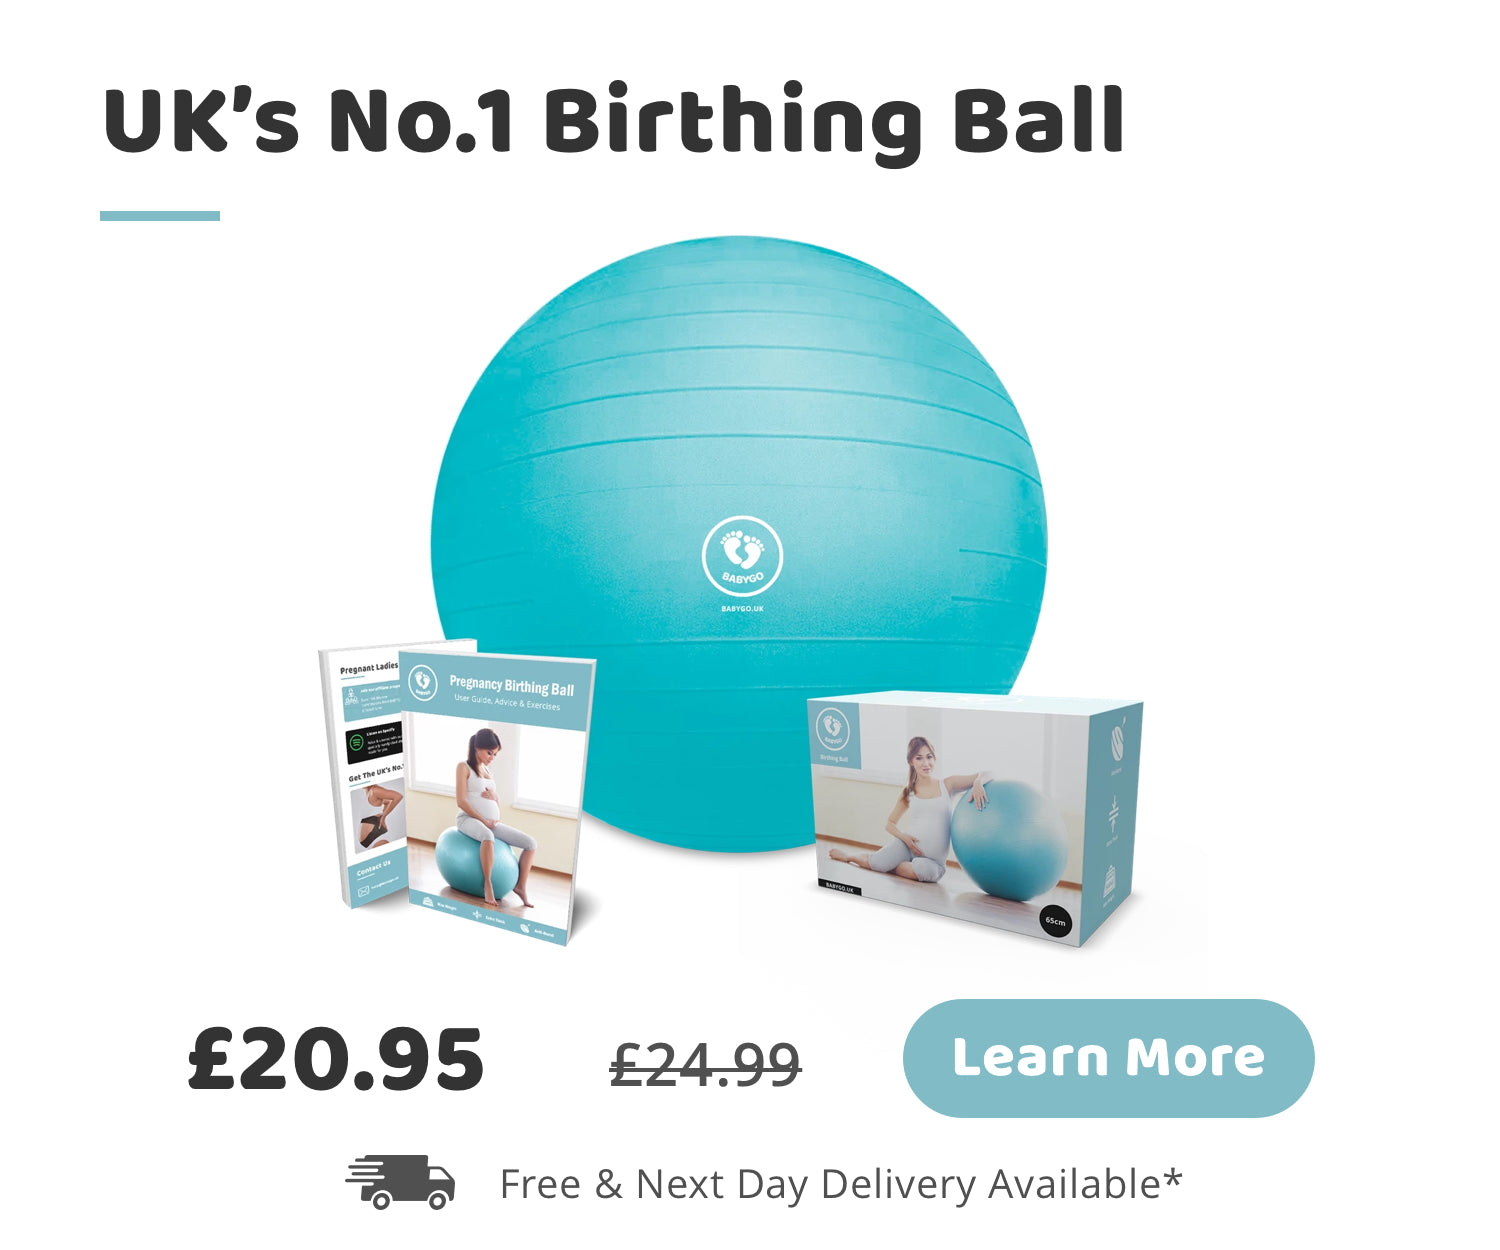 Unlock the benefits of the BABYGO birthing ball